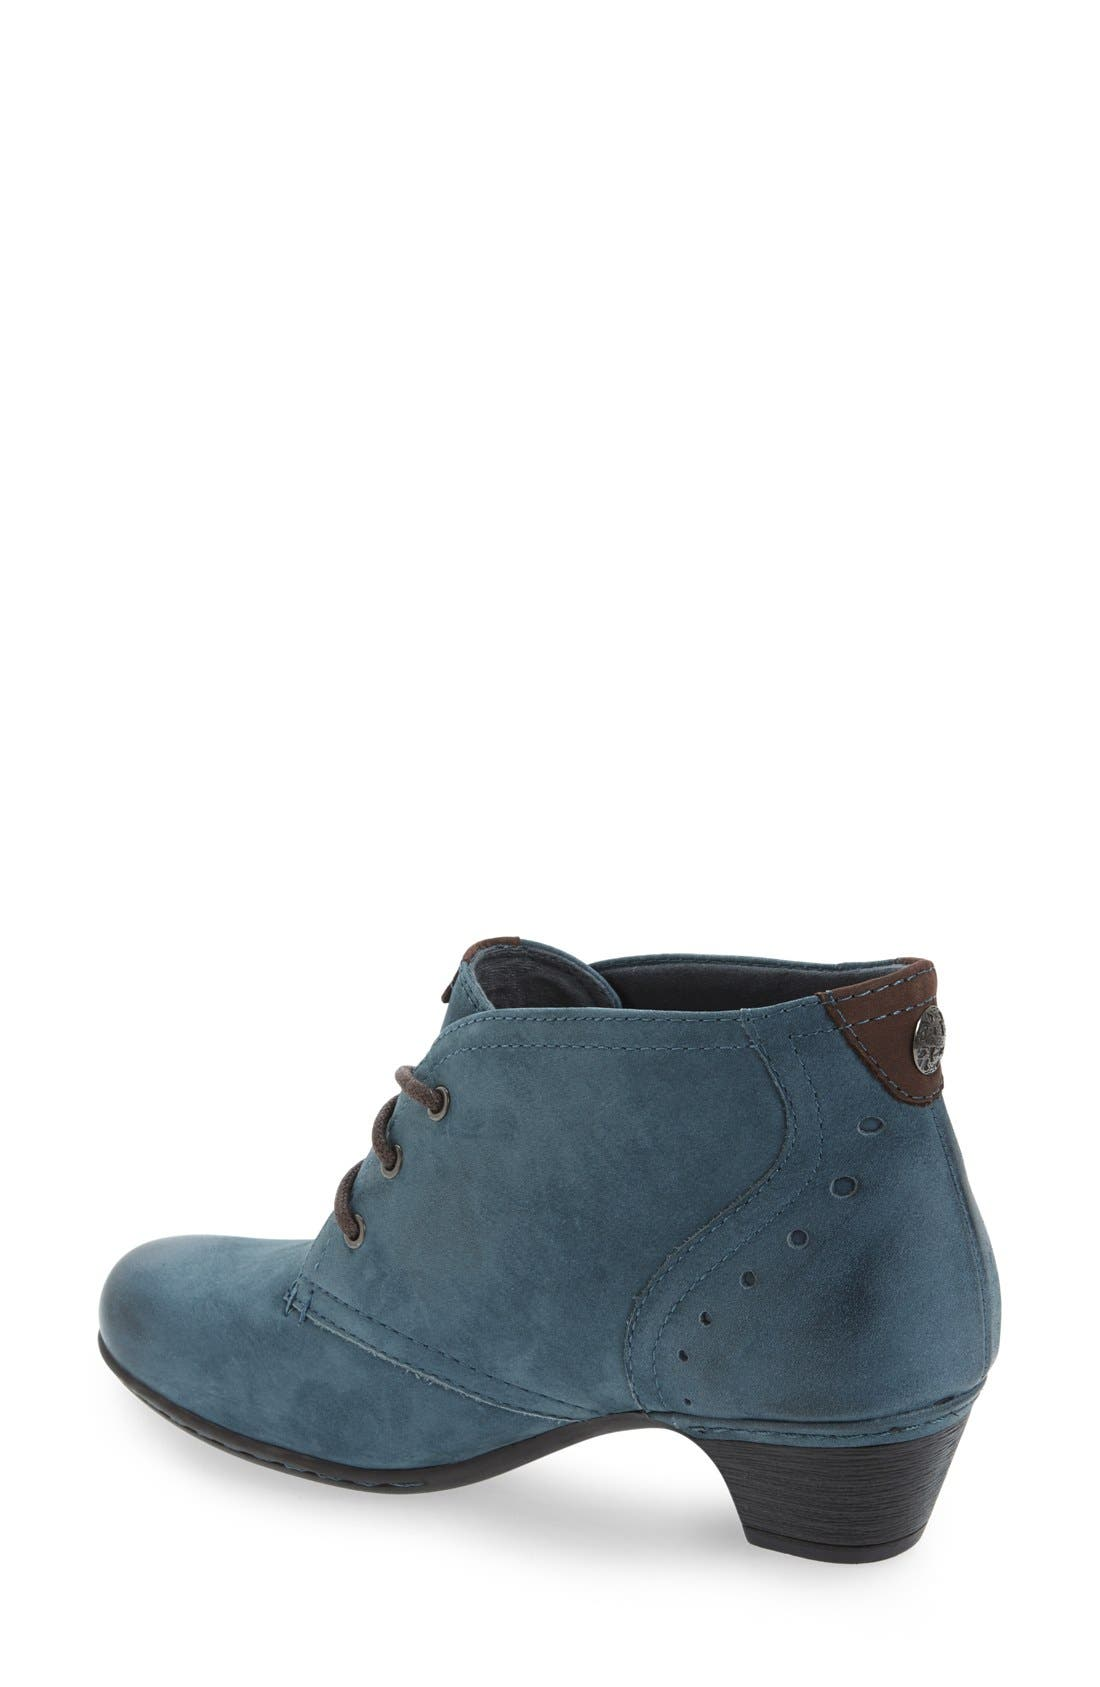 Aria Leather Boot,                             Alternate thumbnail 2, color,                             400